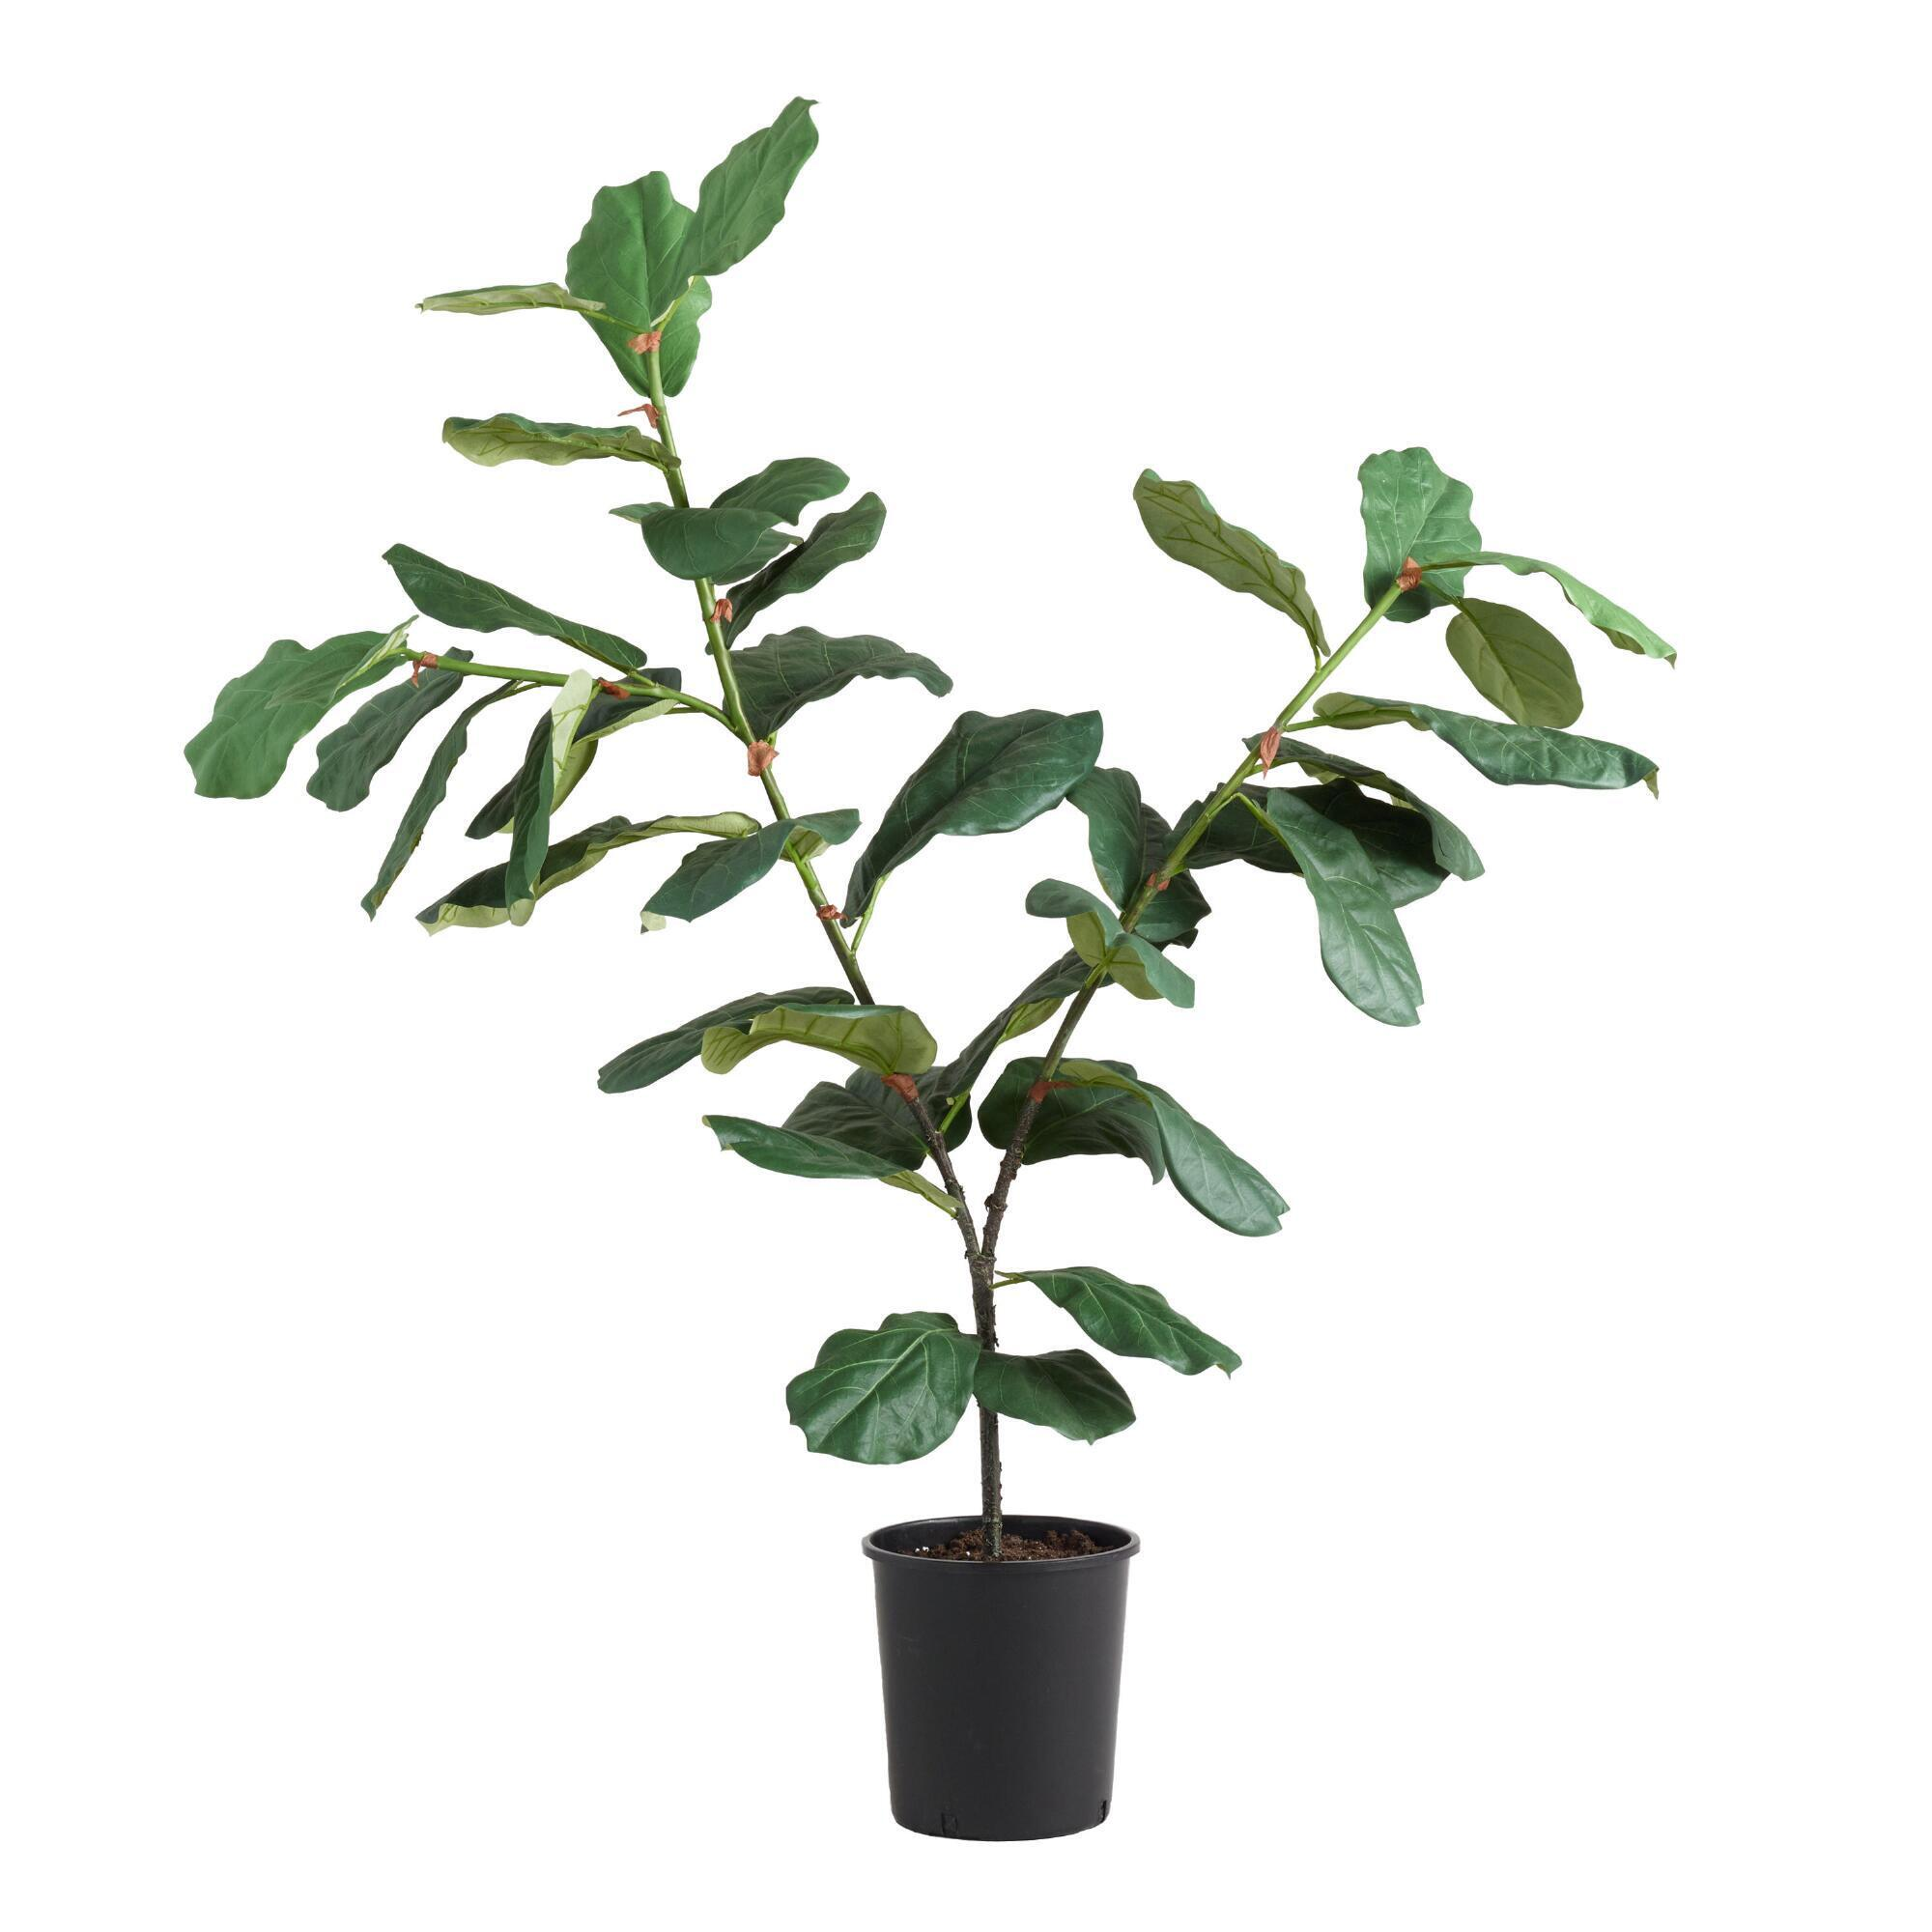 5 ft faux fiddle leaf fig plant - Fiddle Leaf Fig Tree